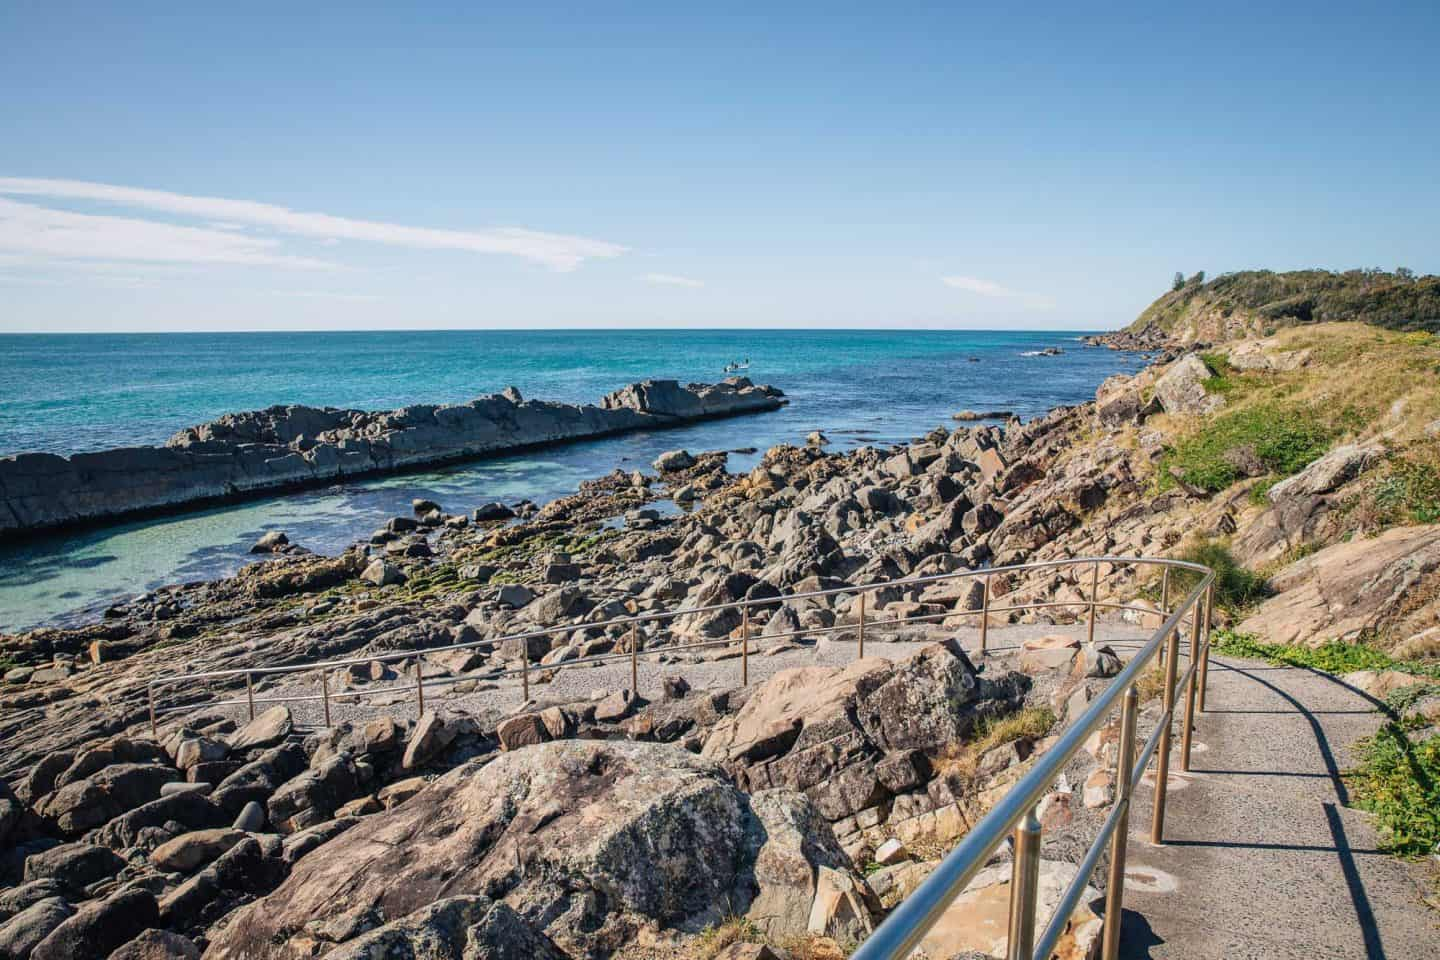 Forster nsw, things to do in forster, what to do in forster, things to do forster, camping in forster, beaches in forster, beaches at forster, pebbly beach forster, the tanks forster, the tanks